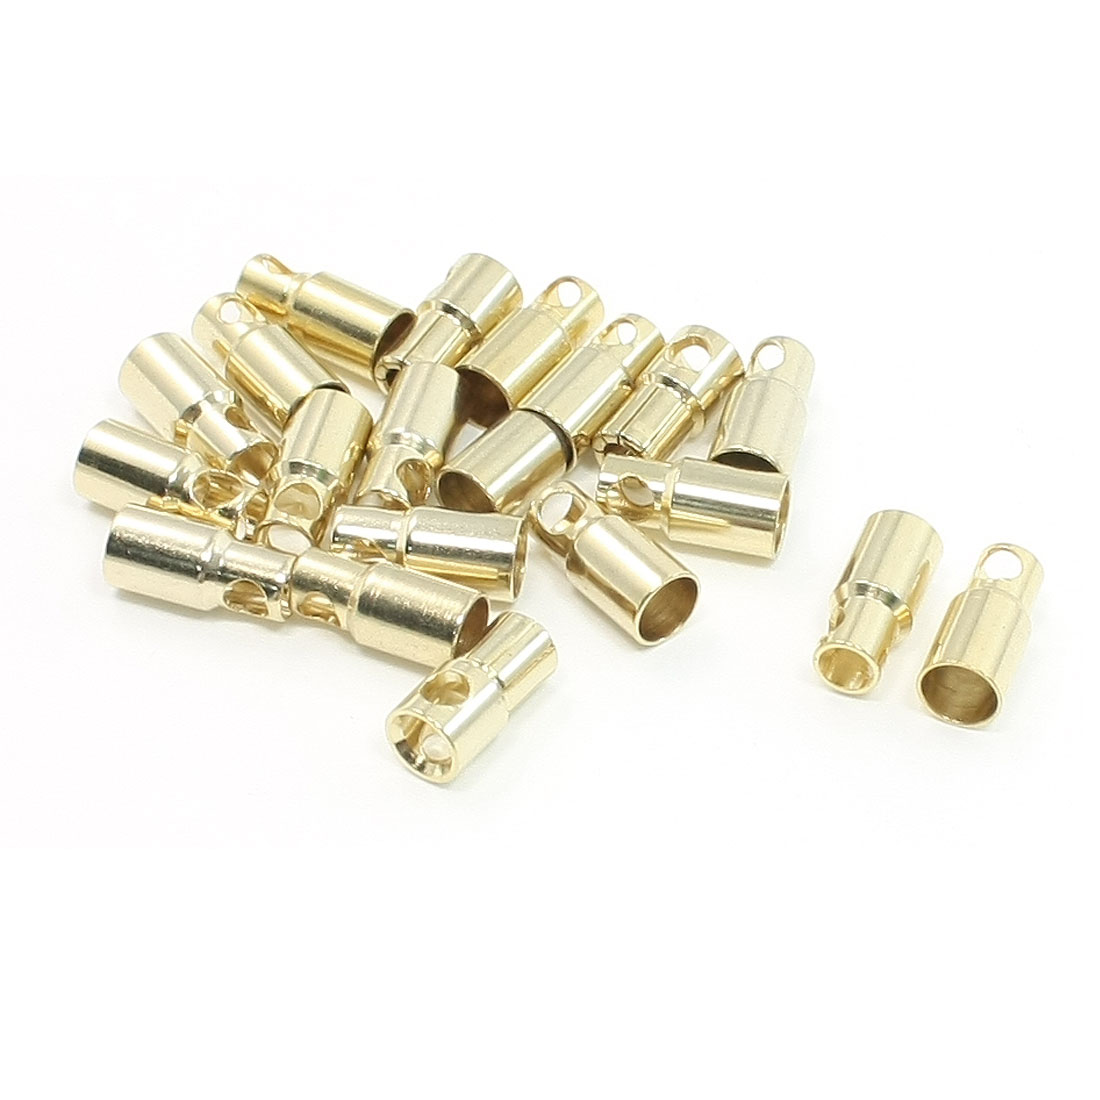 RC Cone 6mm Inside Dia Female Plug Cone Connector 20 Pcs